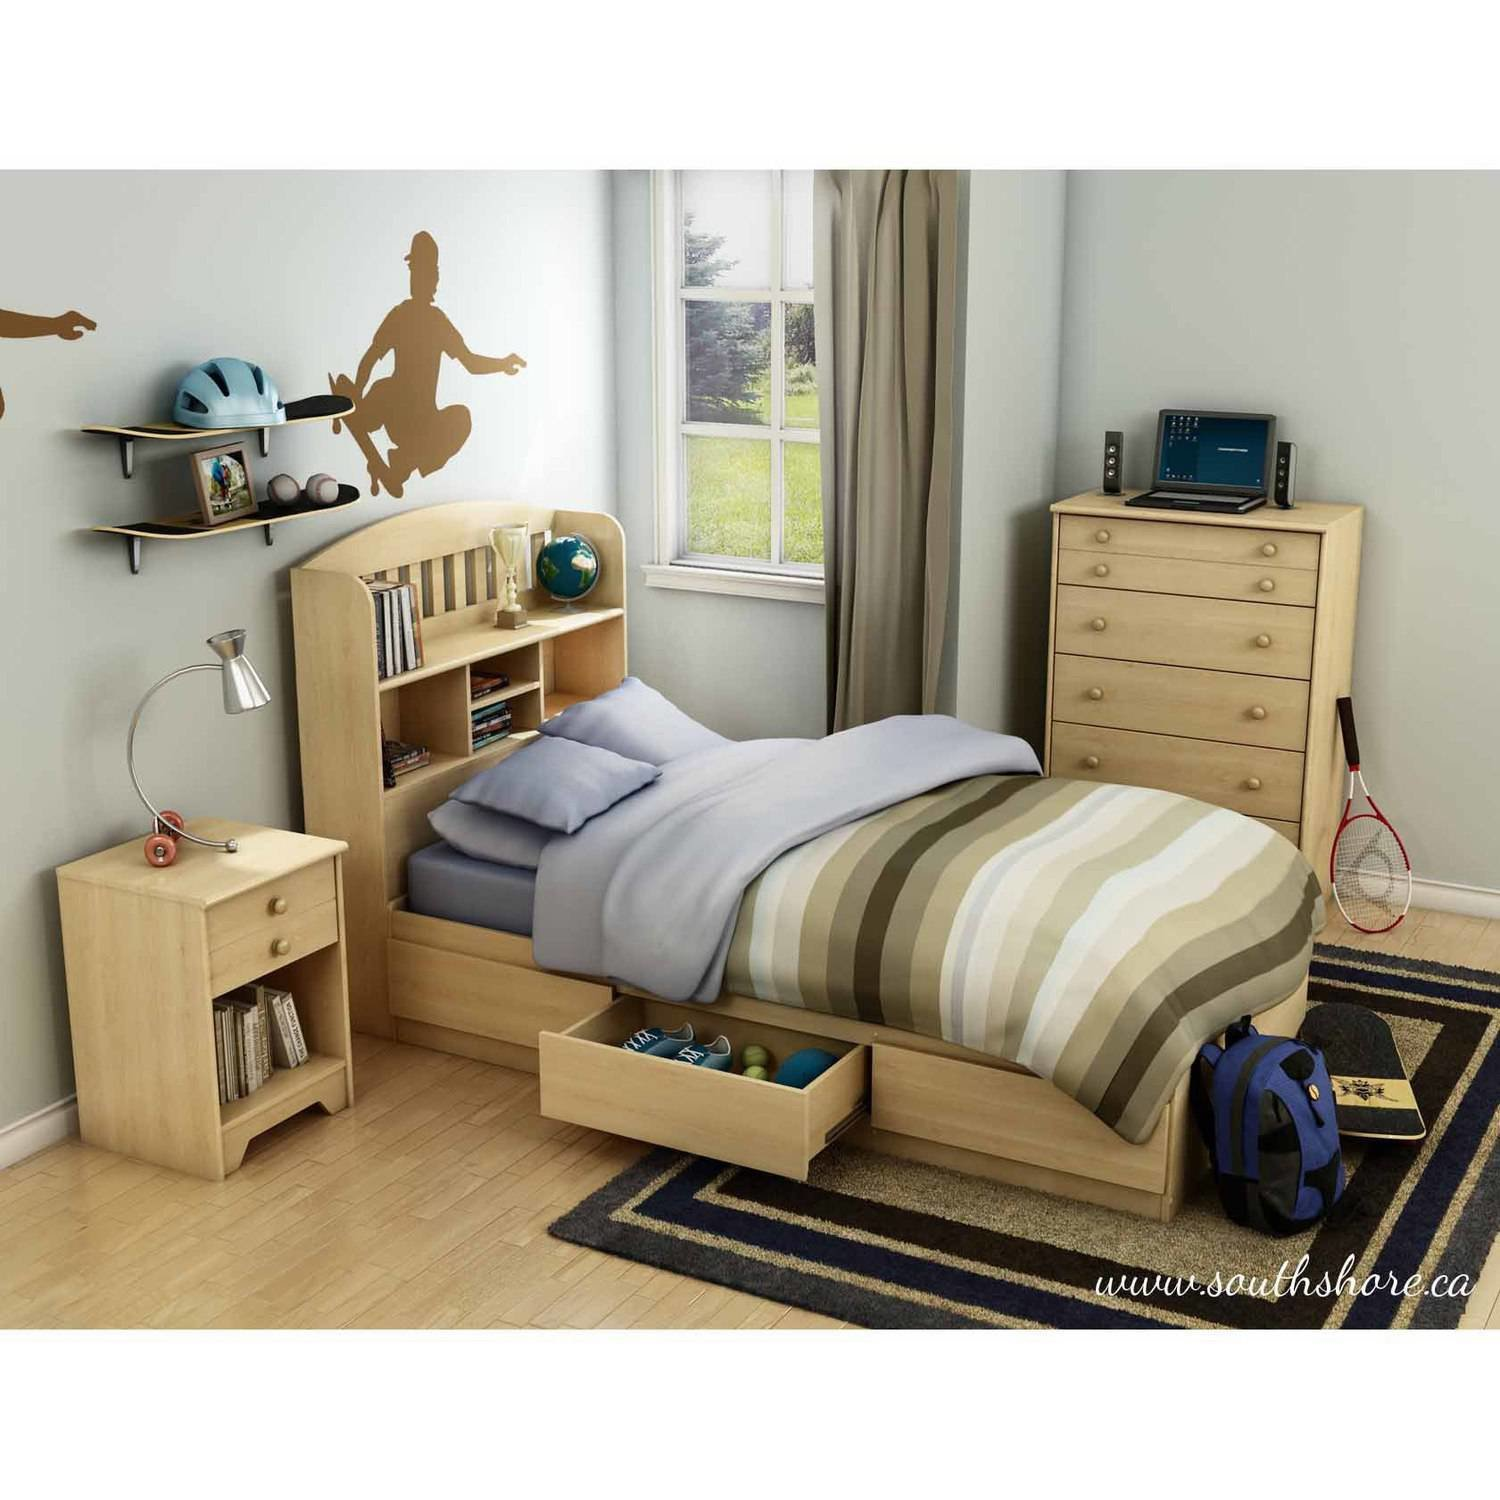 Best South Shore Popular Kids Bedroom Furniture Collection With Pictures